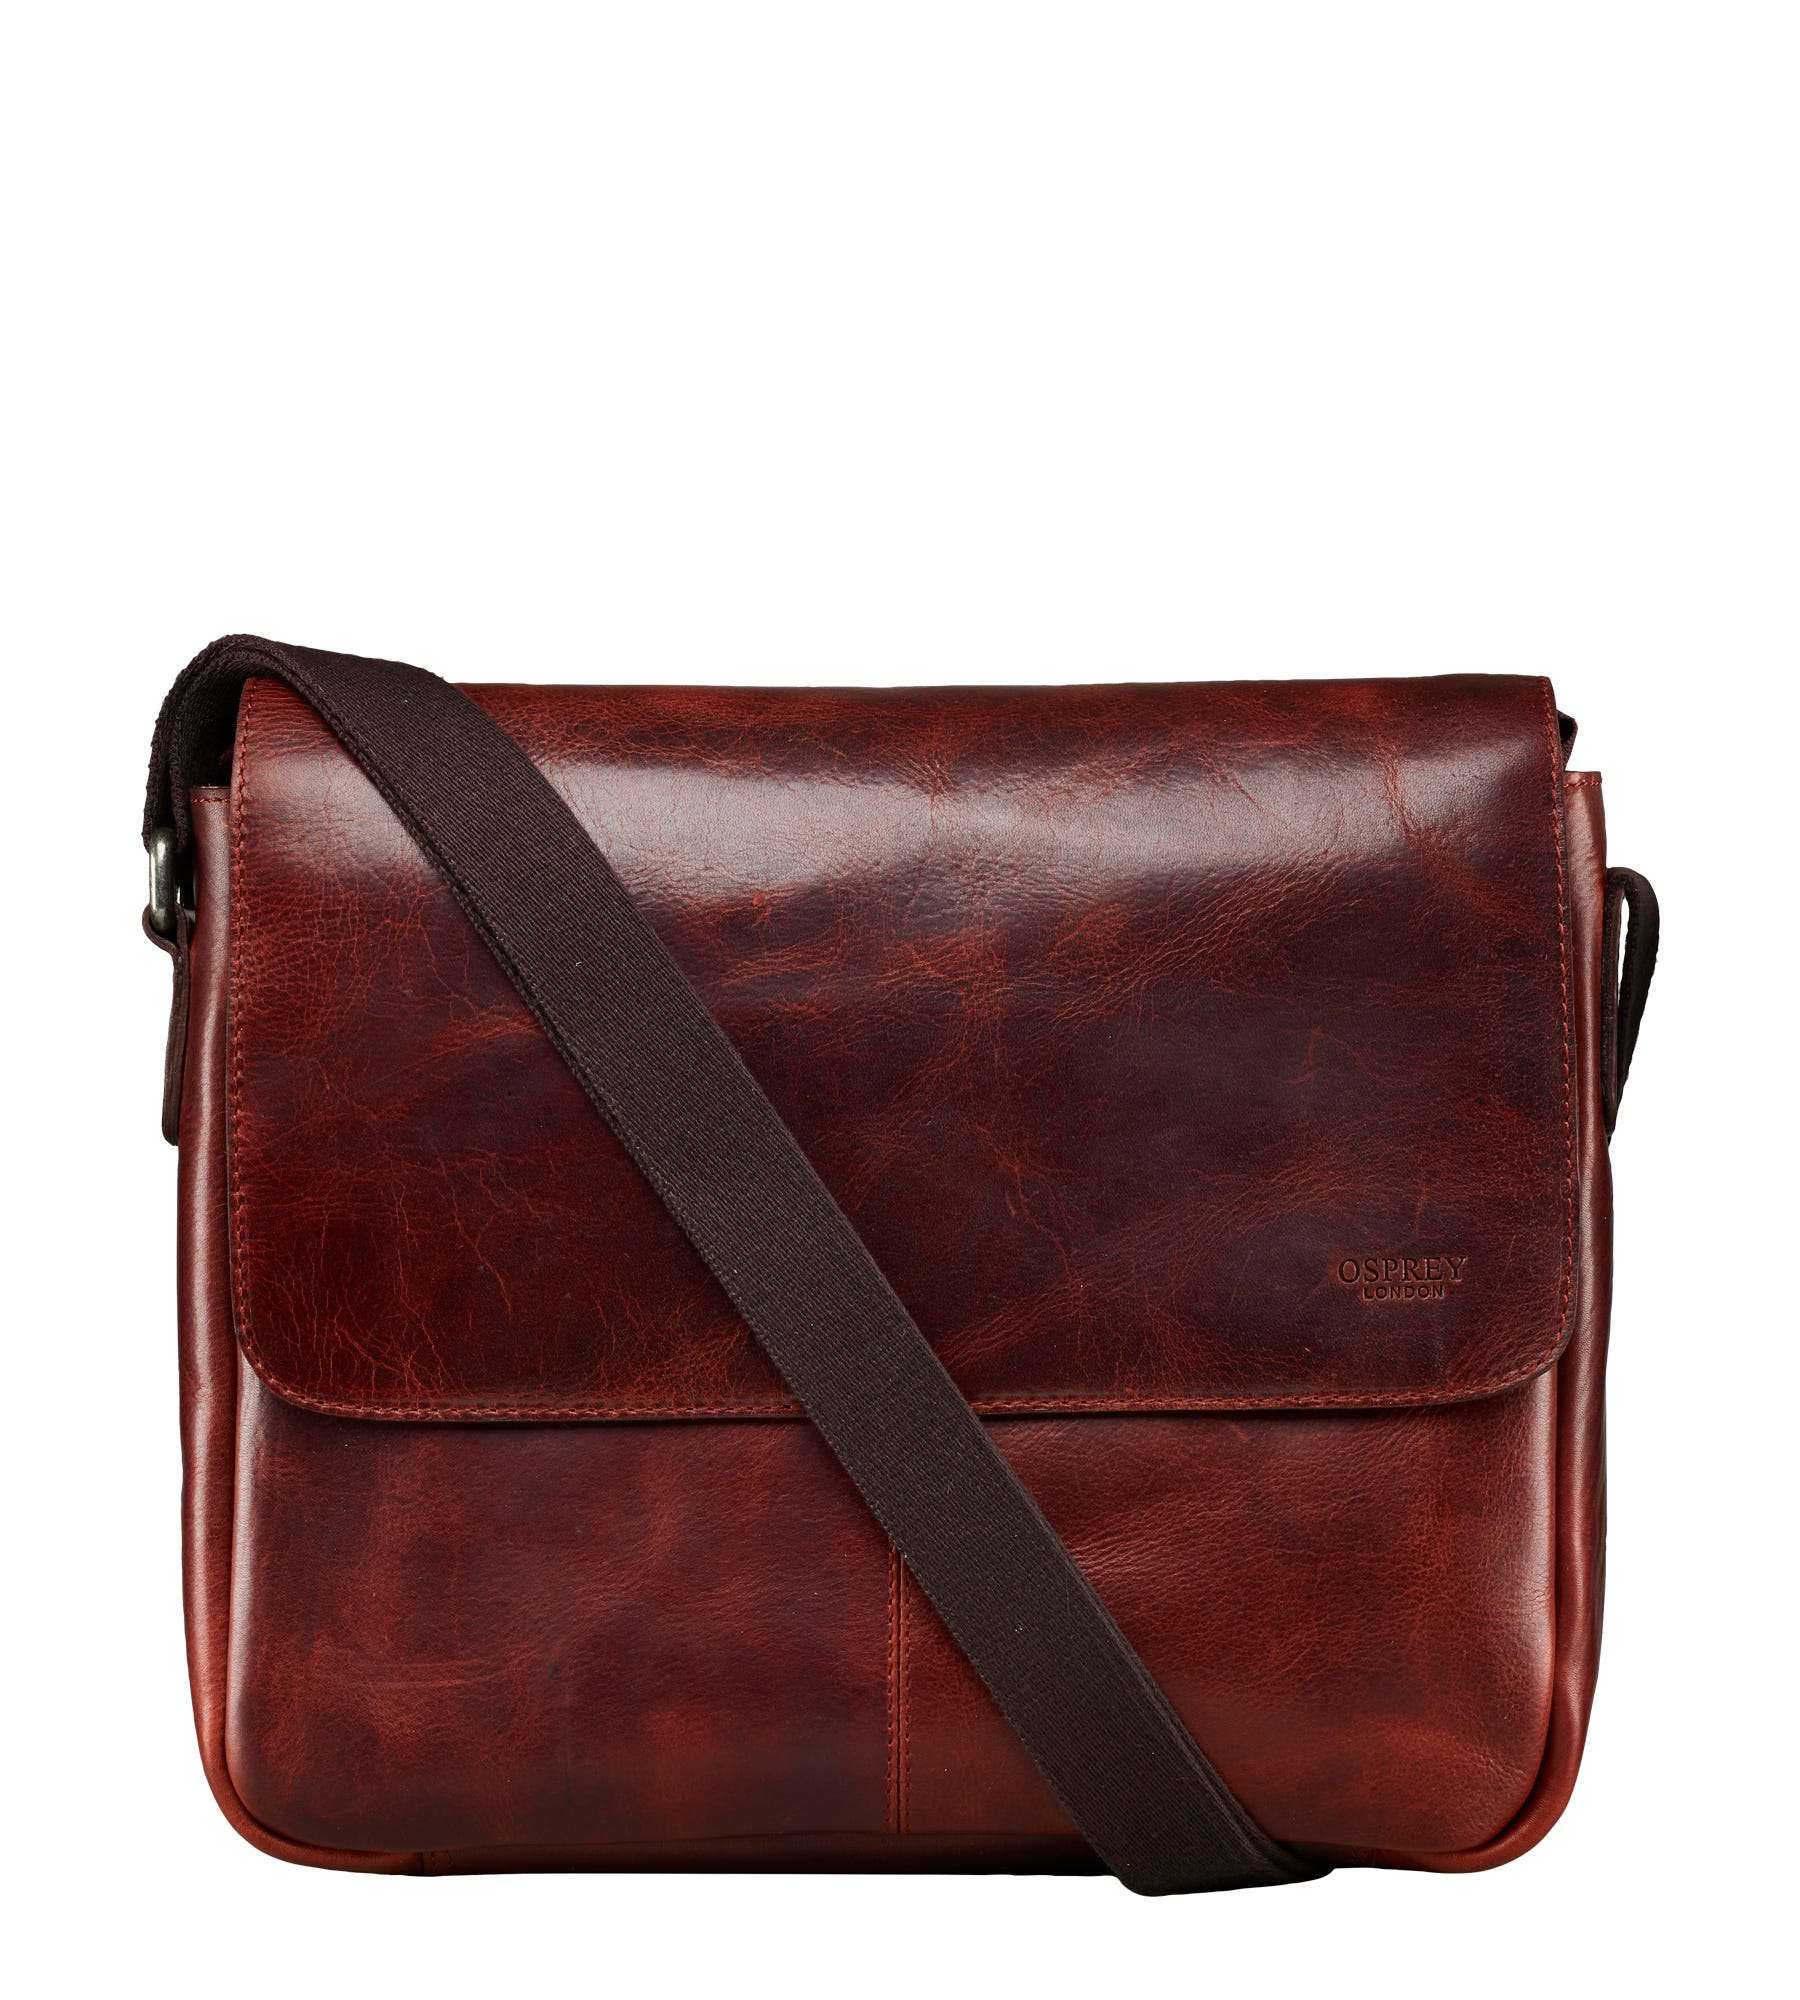 An image of The Large Brooks Leather Messenger